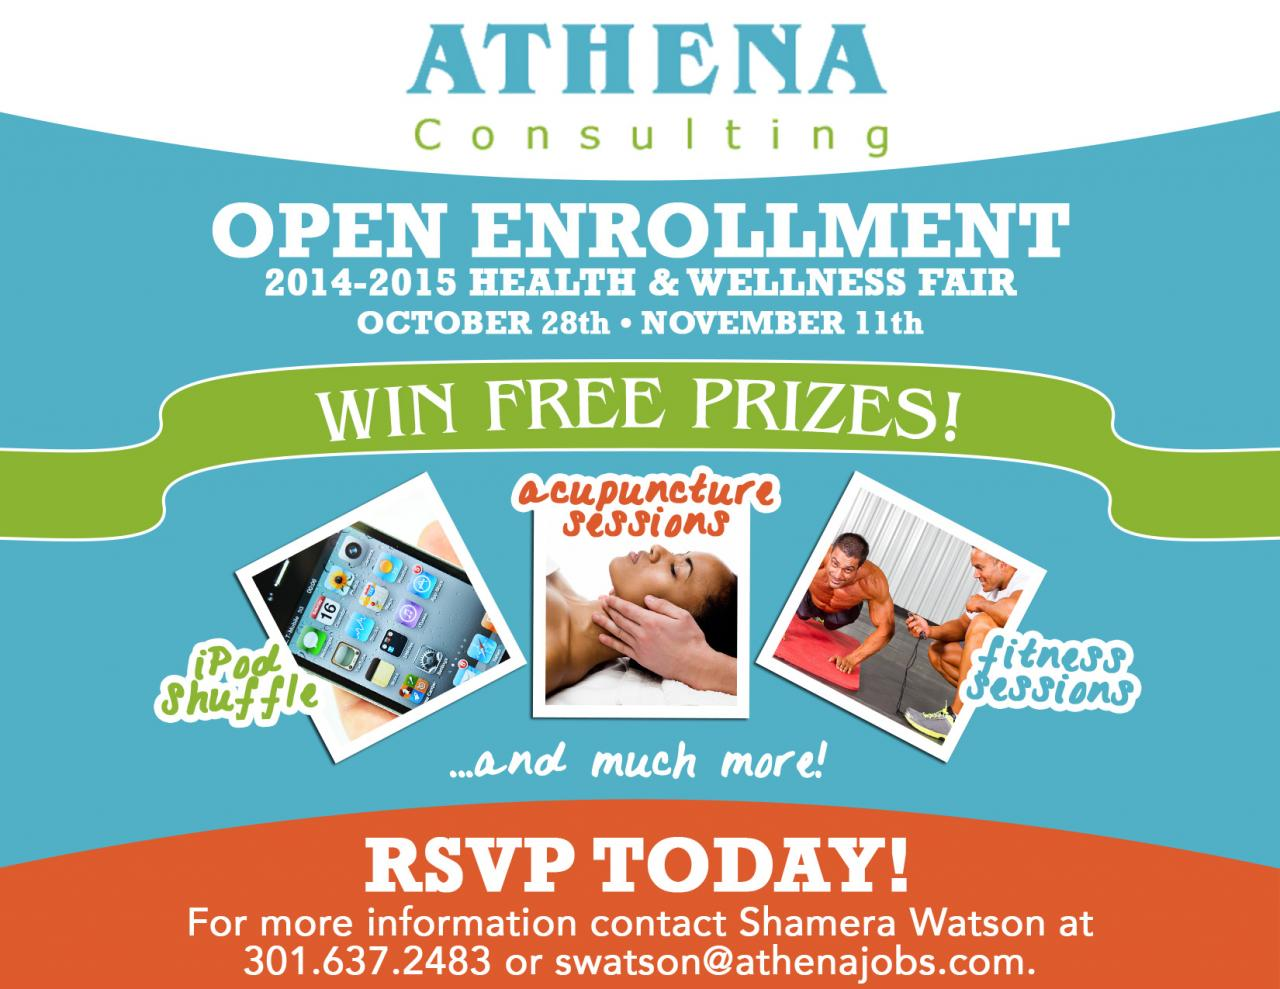 Why Should Employees Consider Their Open Enrollment Benefits